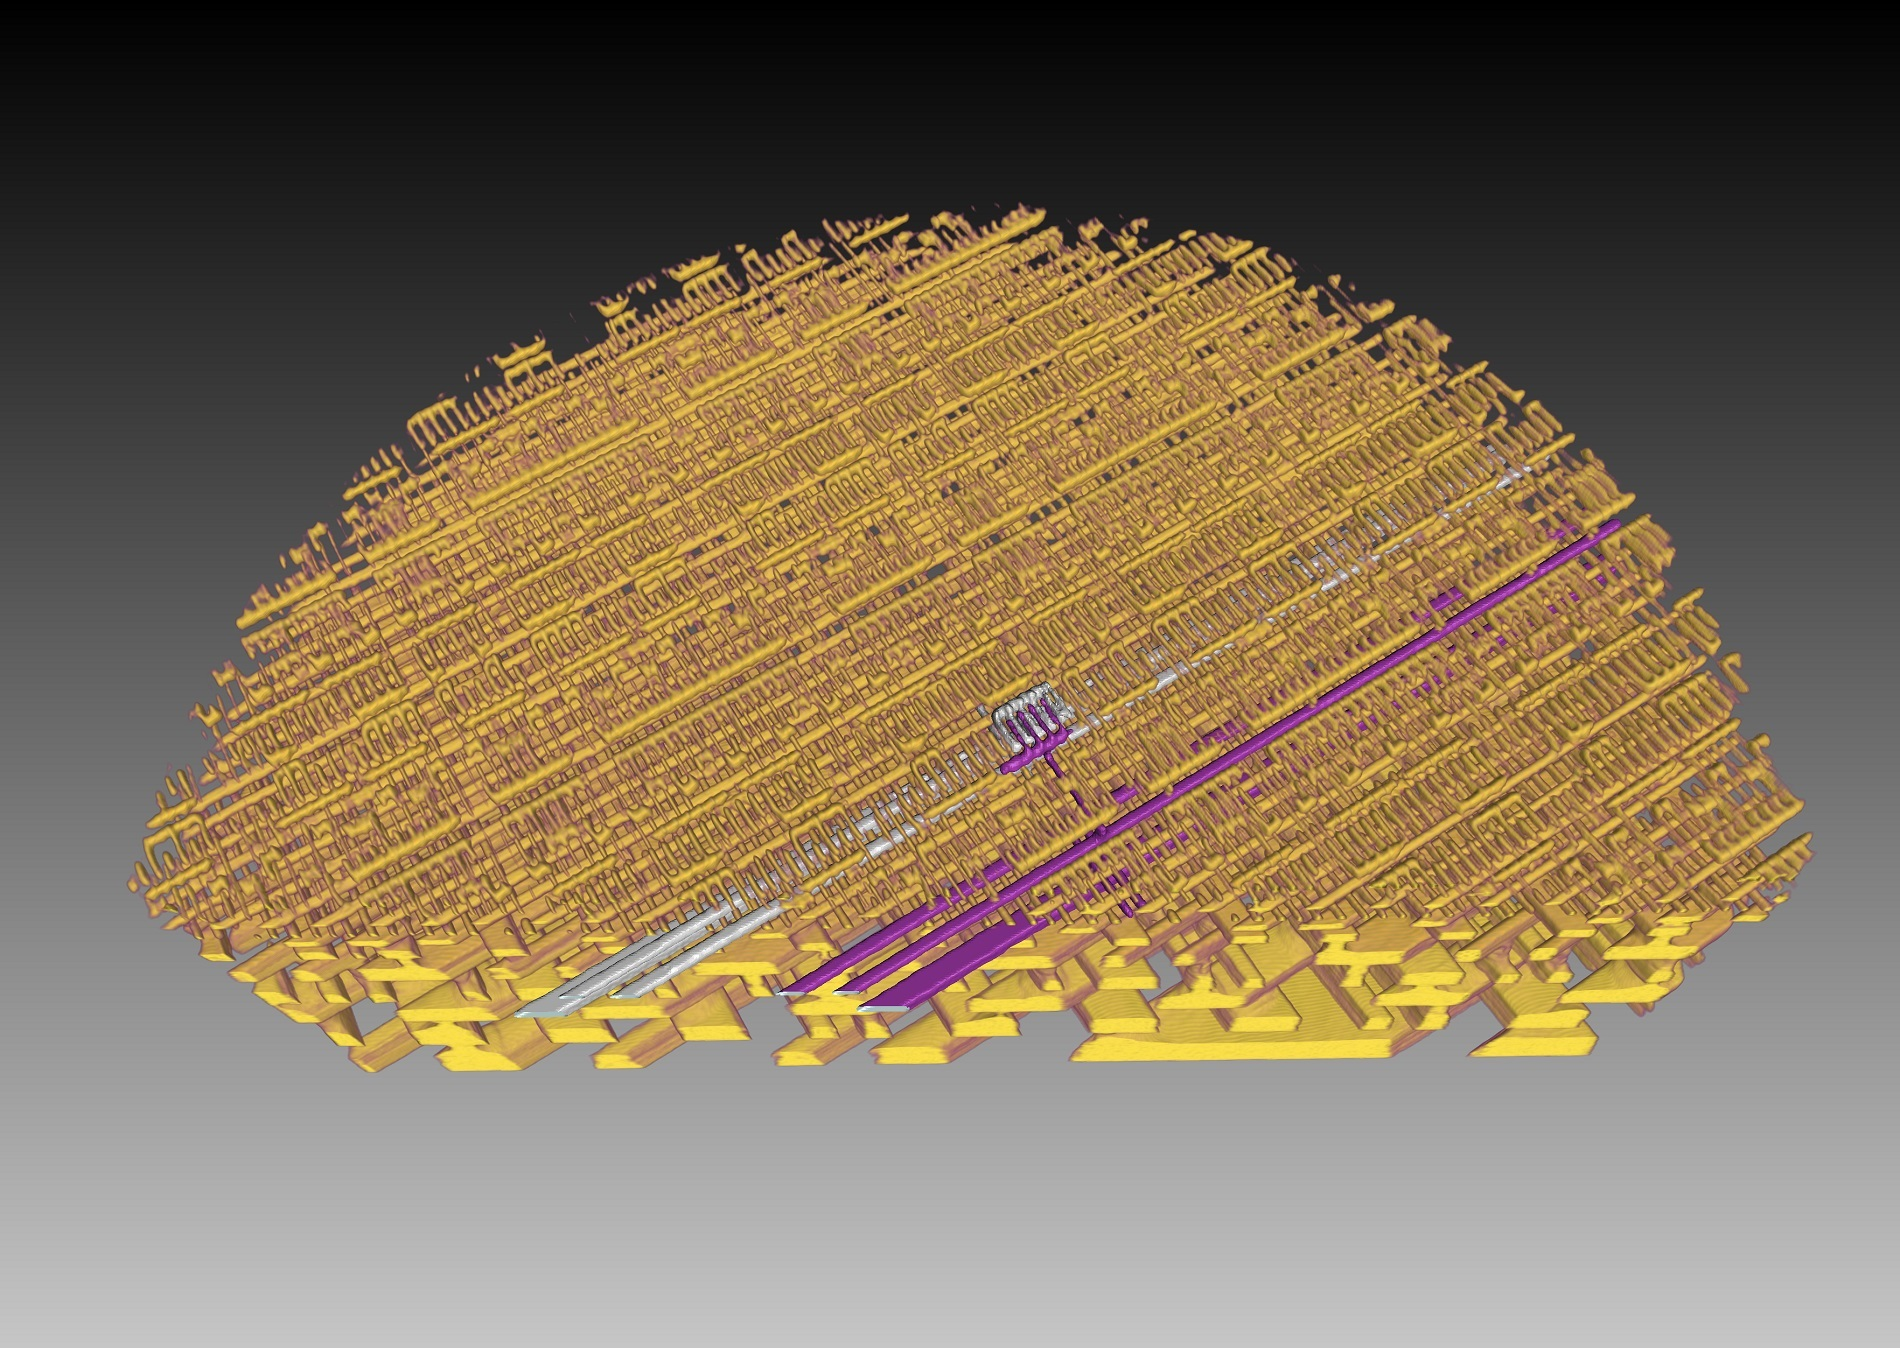 A second 3-D representation of the internal structure of a microchip